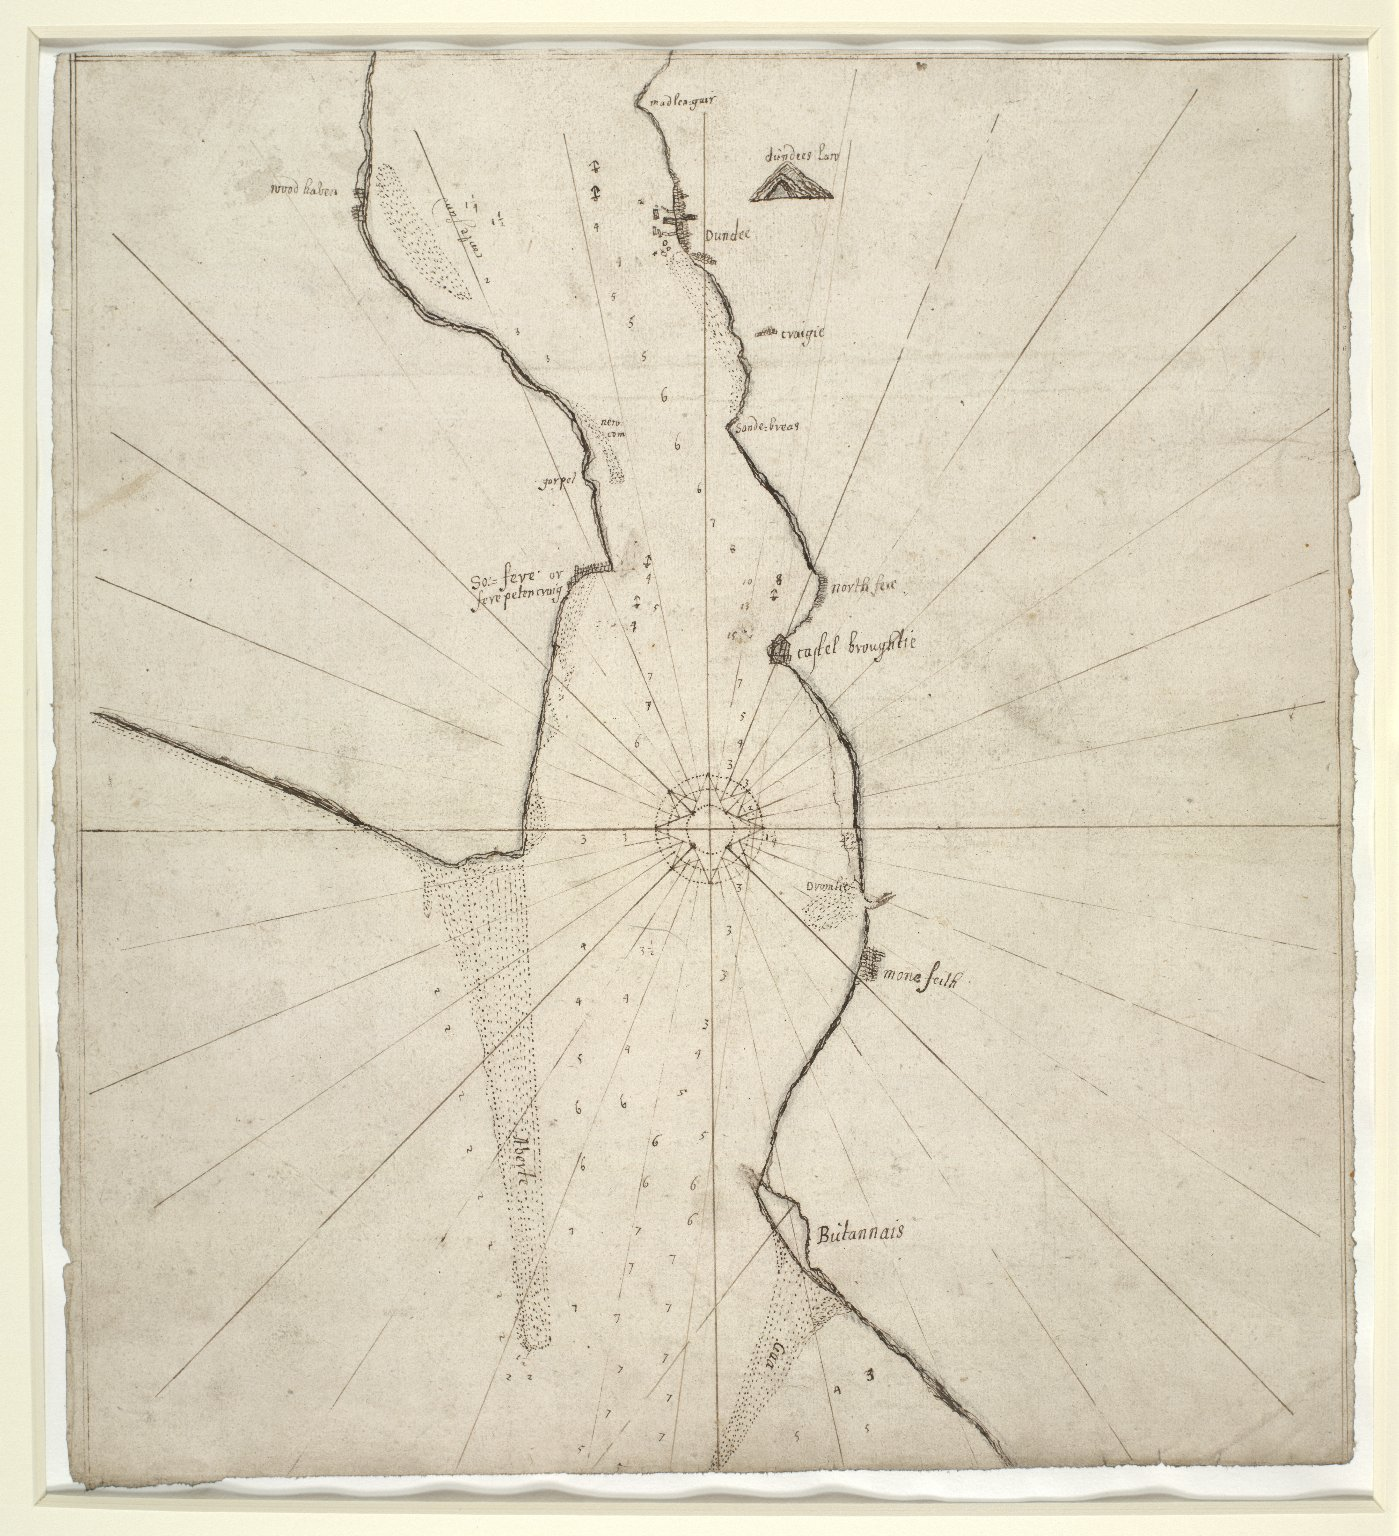 [A chart of the mouth of the Firth of Tay] [1 of 1]